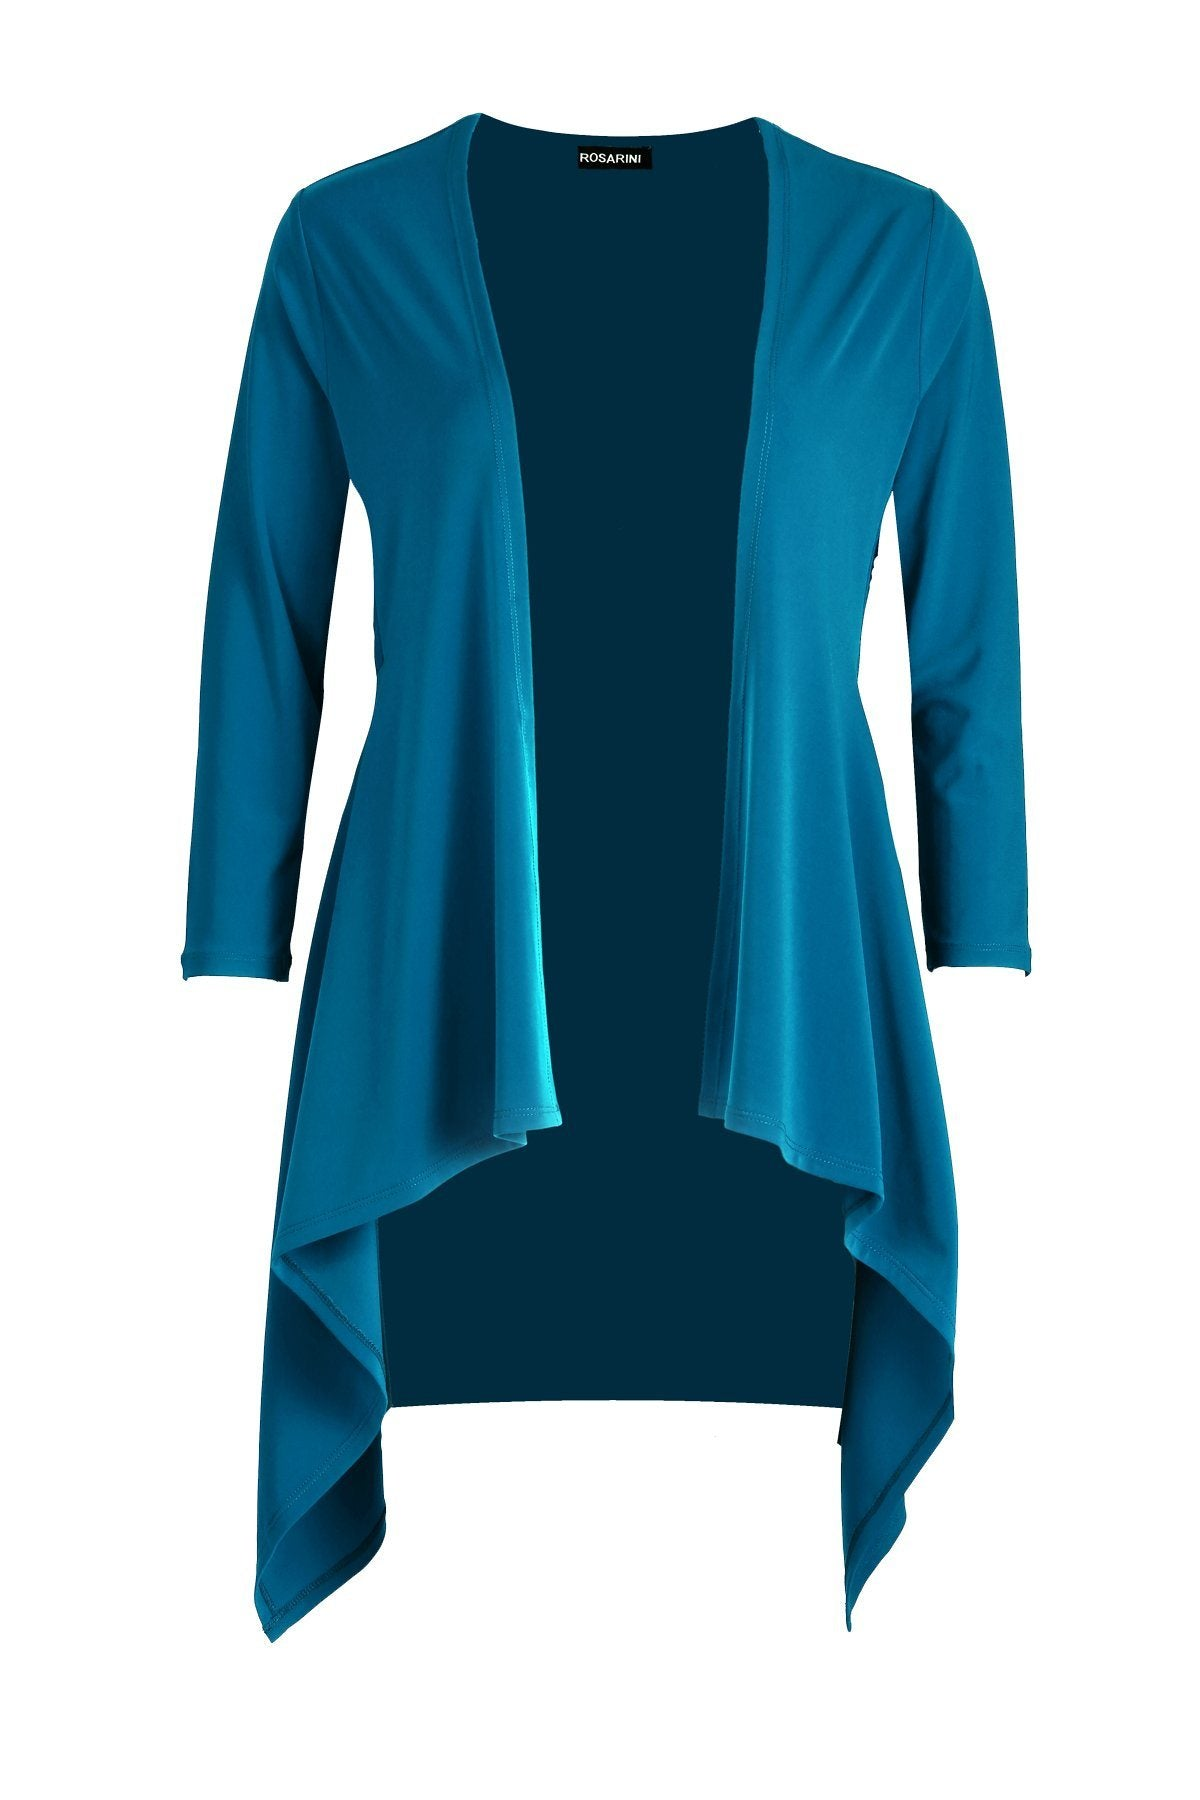 Women's Teal Long Sleeve Contour Cardigan Rosarini